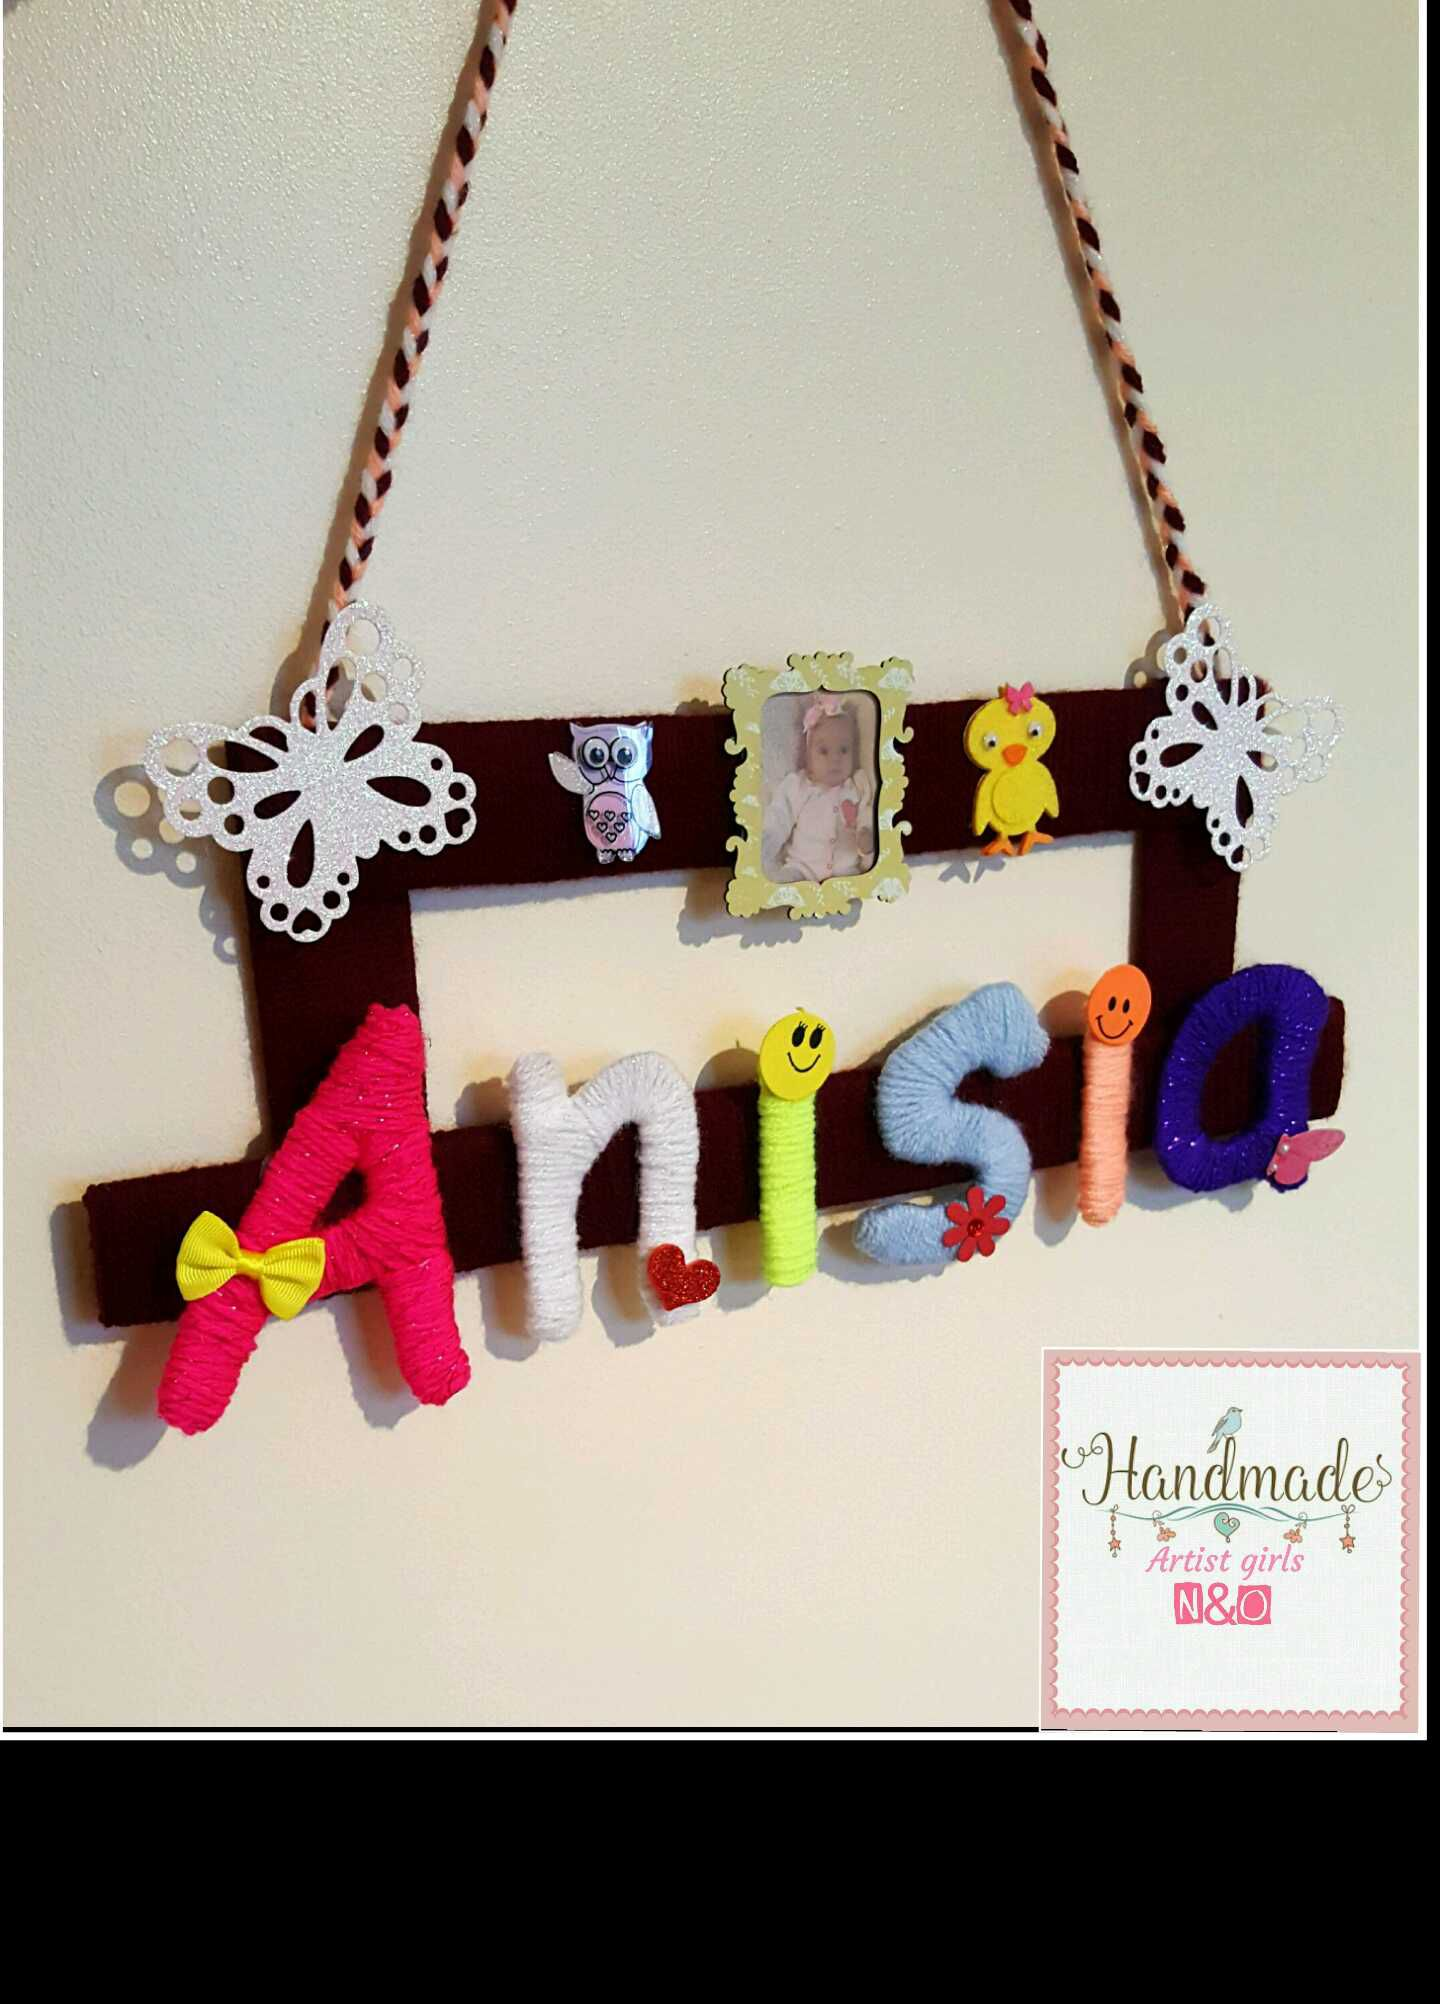 handmade gift yarn textile children kids decoration letters